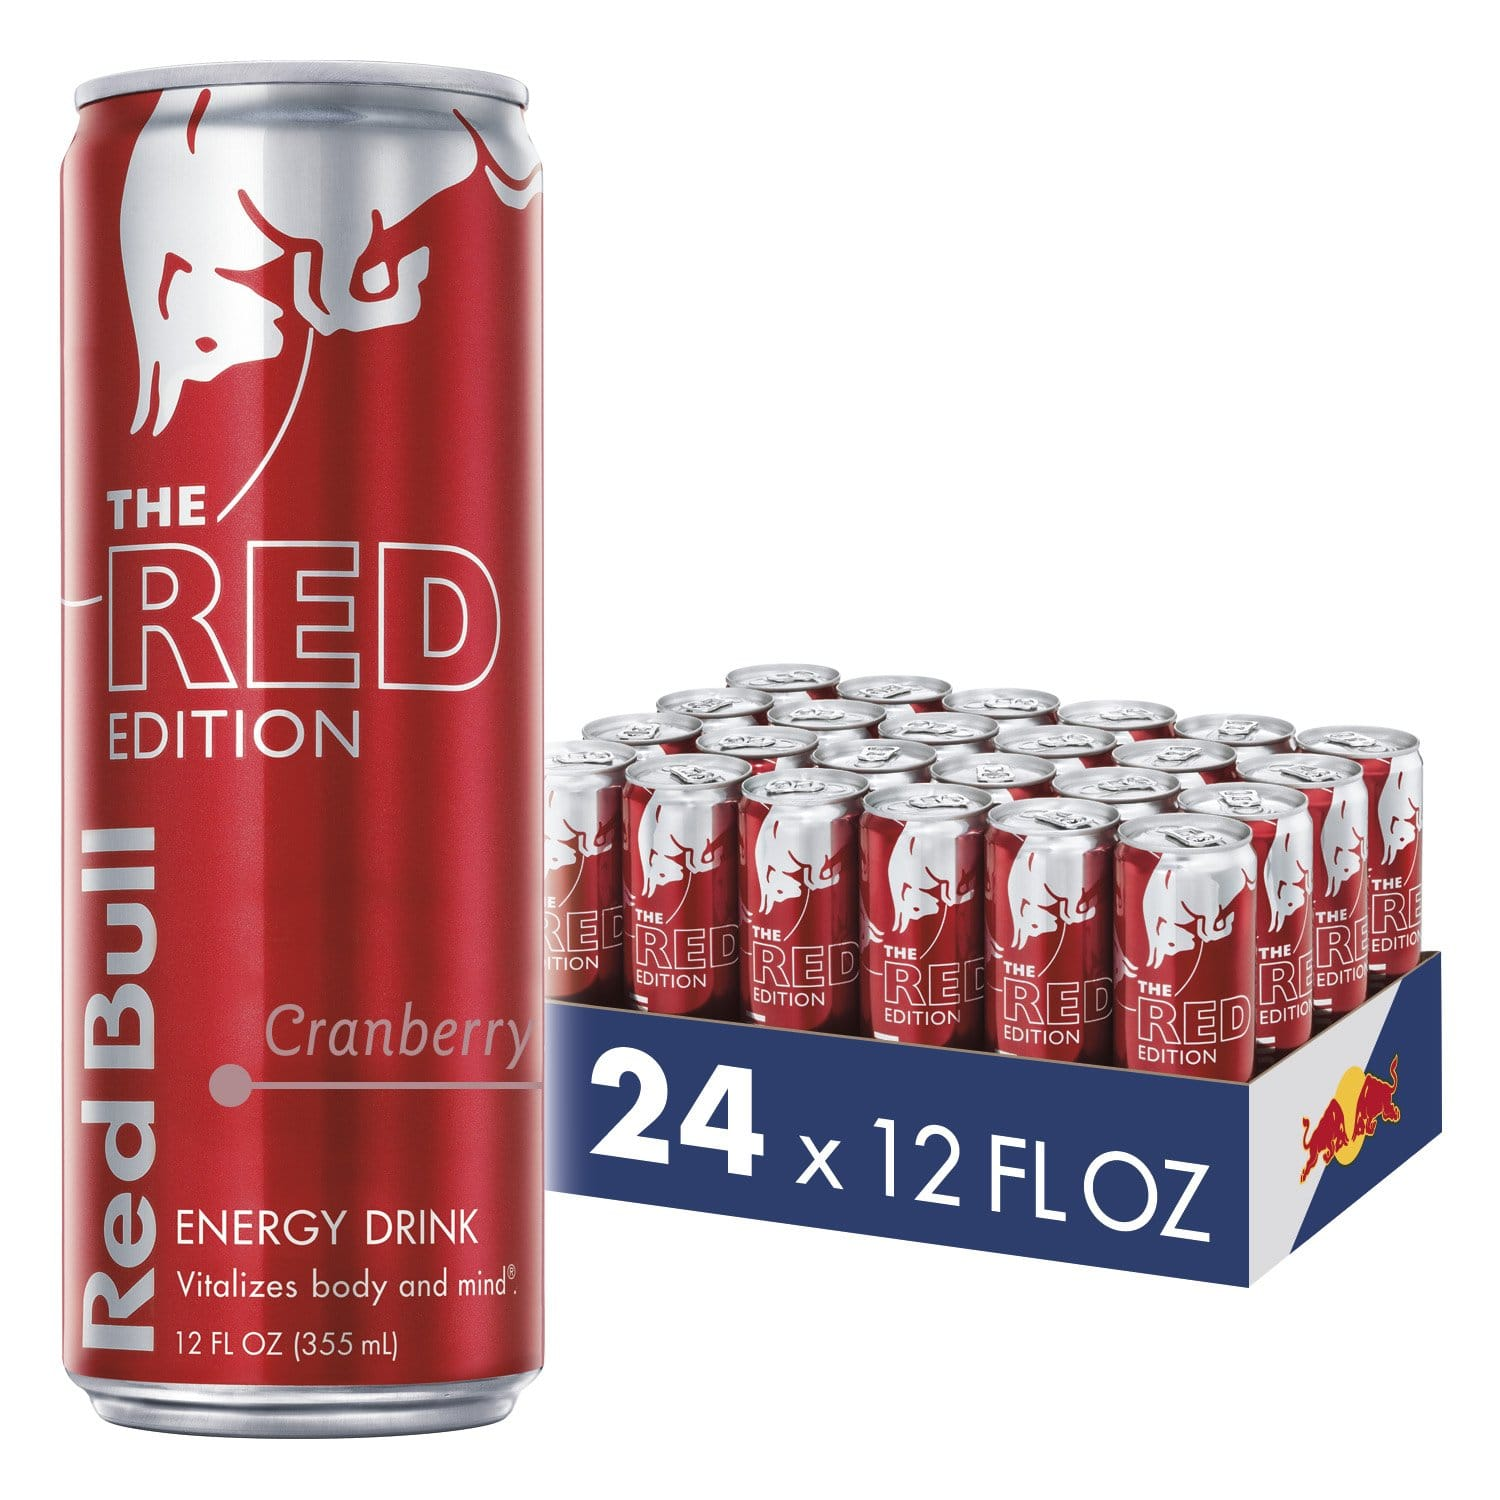 24-Pack 12-Oz Red Bull Energy Drink (Cranberry) $35.57 w/ S&S + Free S&H